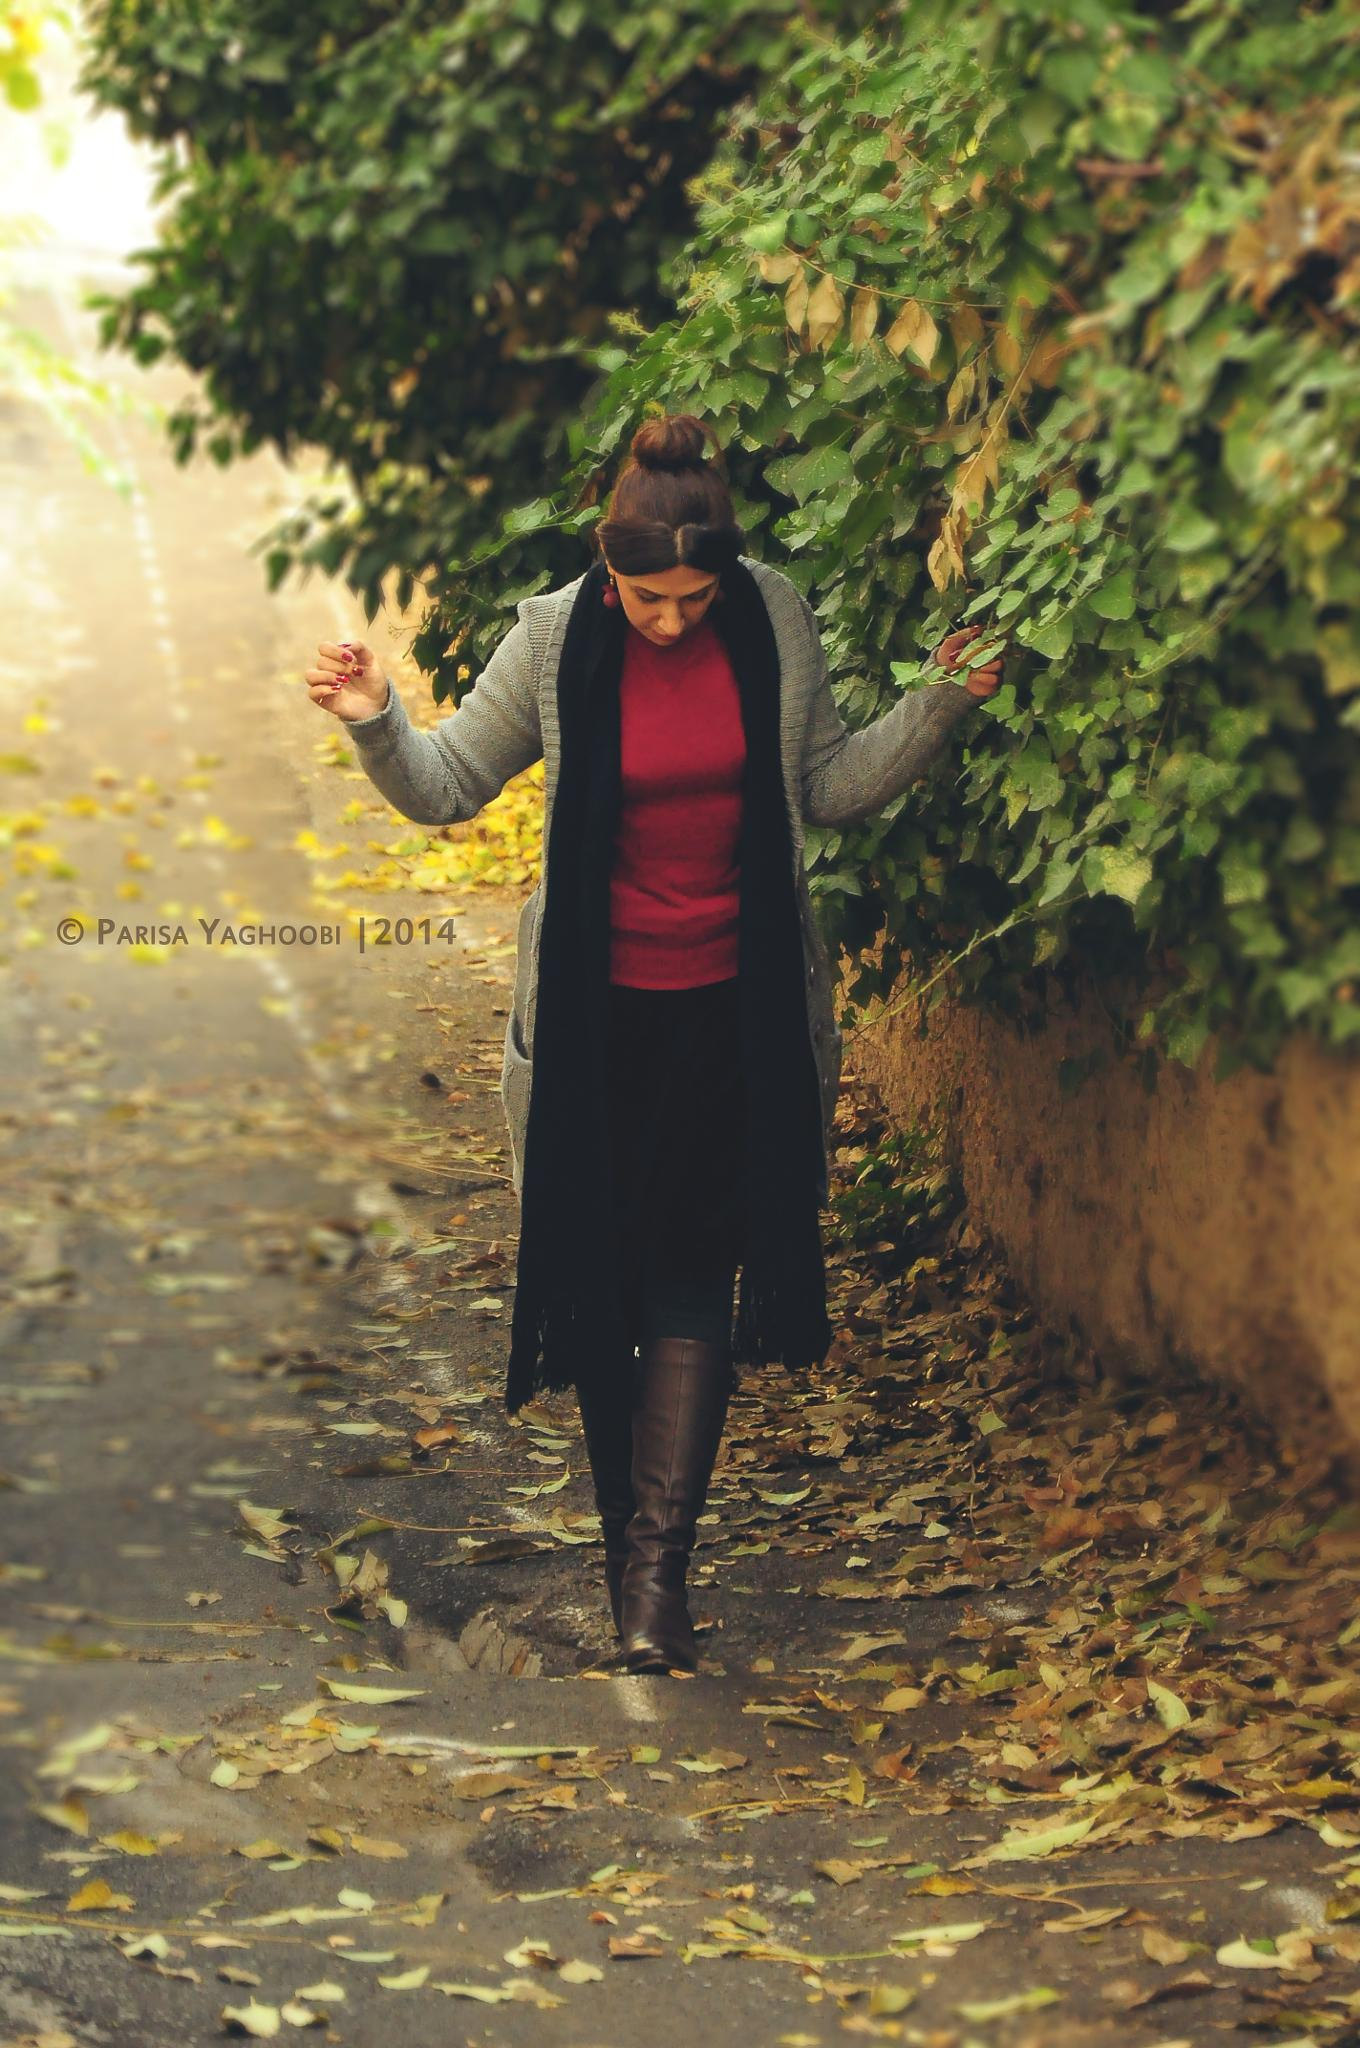 Autumn Walking by Parisa Yaghoobi